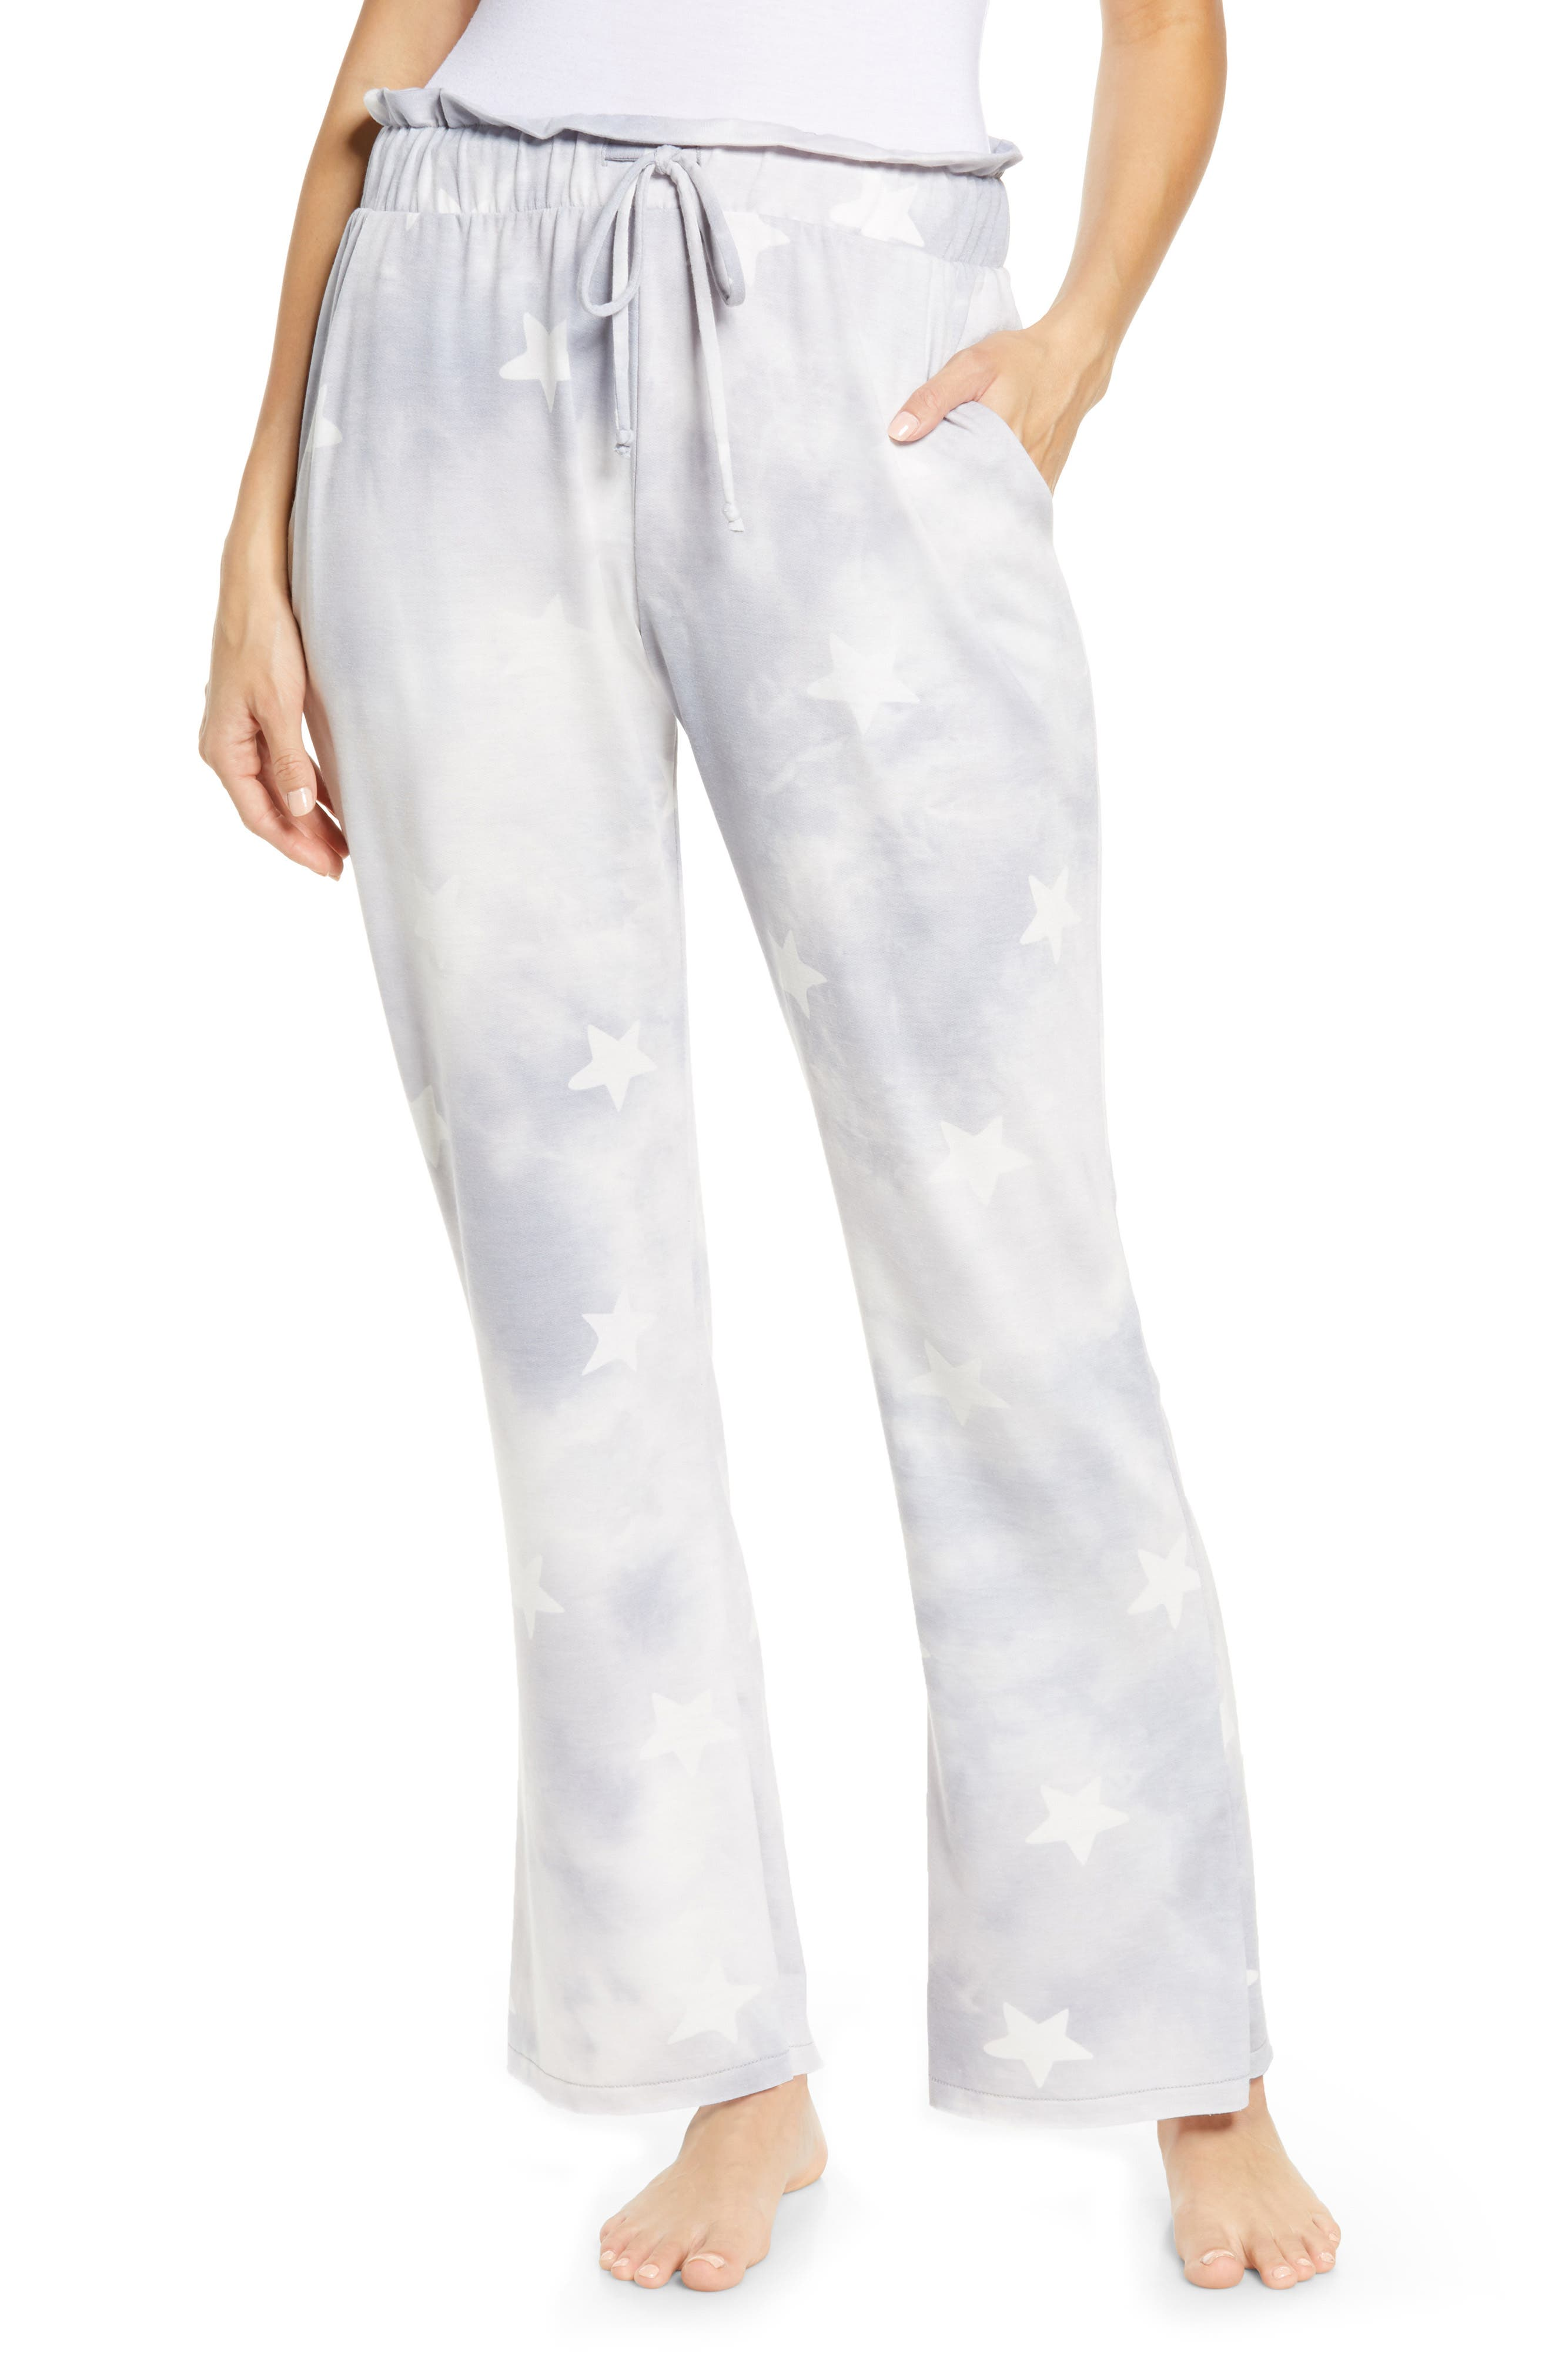 French Terry Wide Leg Sweatpants   Nordstromrack